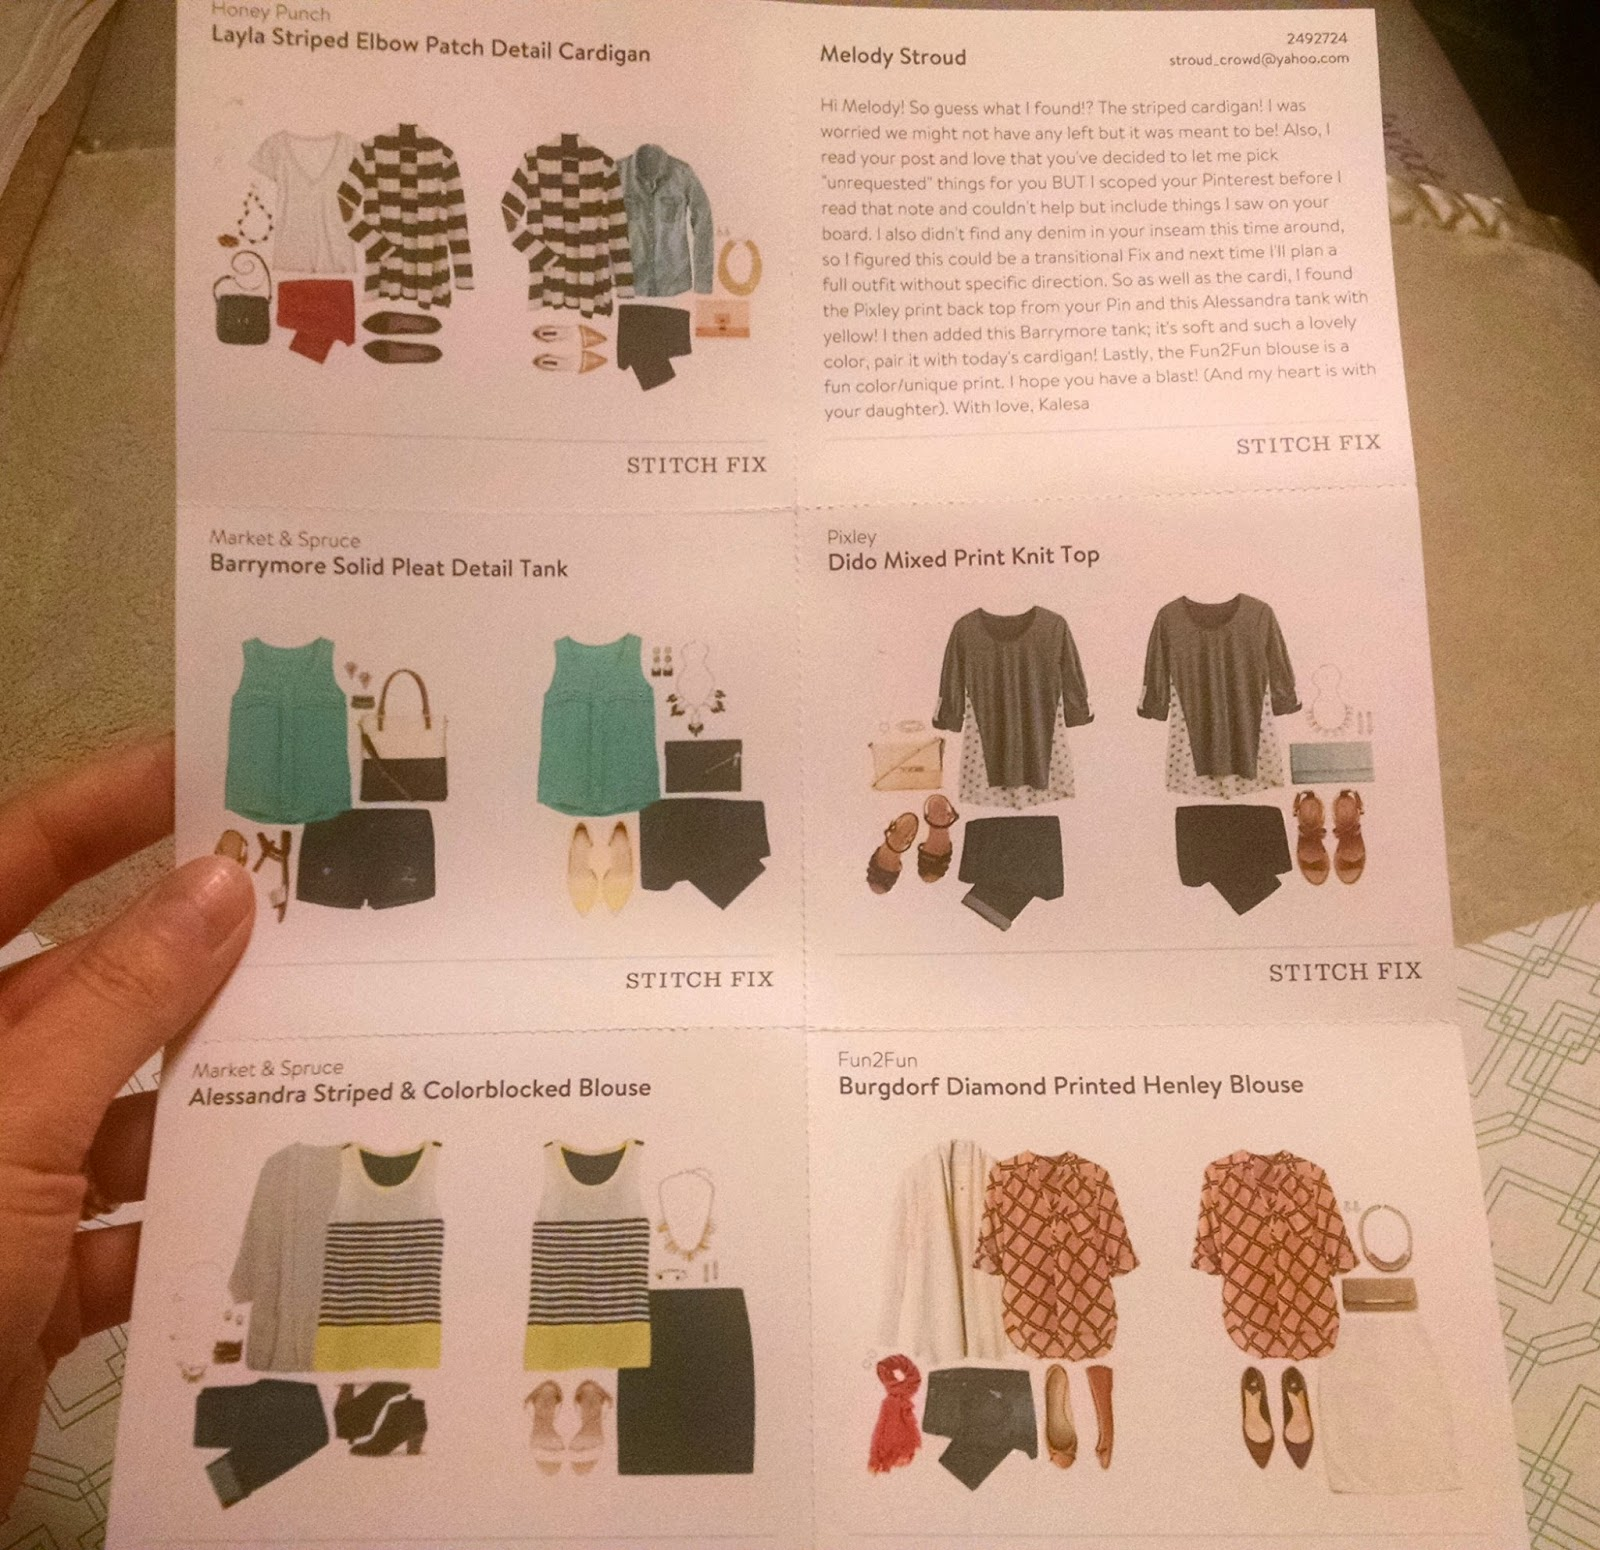 And Here We Go!: Stitch Fix Review #4